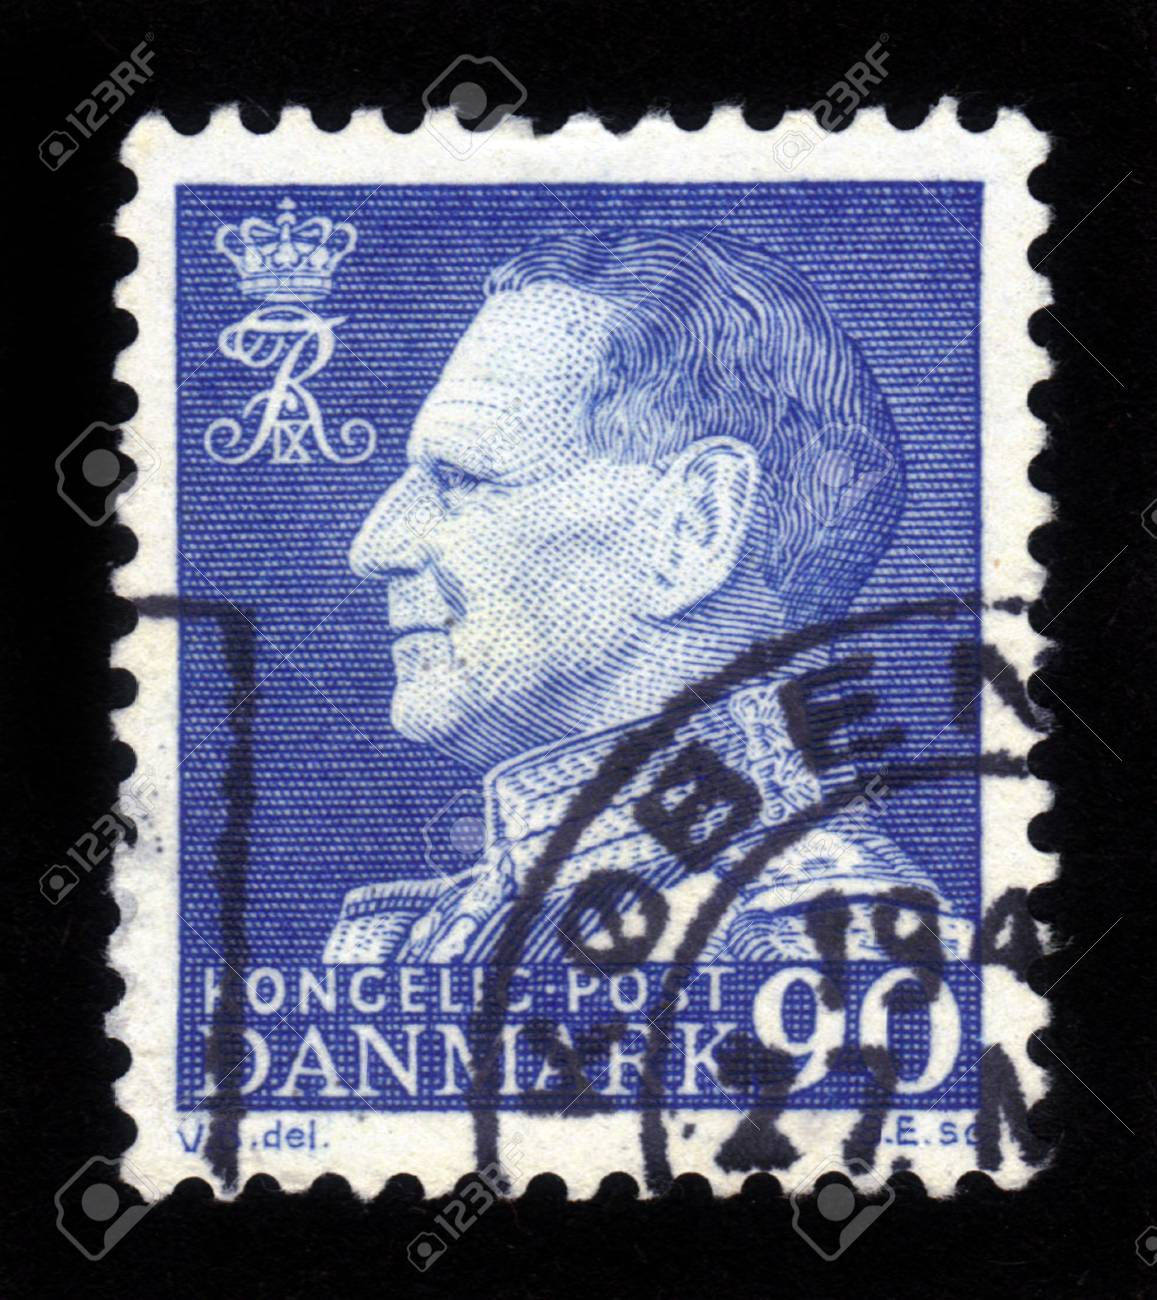 DENMARK-CIRCA 1965 A stamp printed in DENMARK shows image of Frederick IX  Christian Frederik Franz Michael Carl Valdemar Georg  was King of Denmark from 20 April 1947 until his death on 14 January 1972, circa 1965  Stock Photo - 16943116